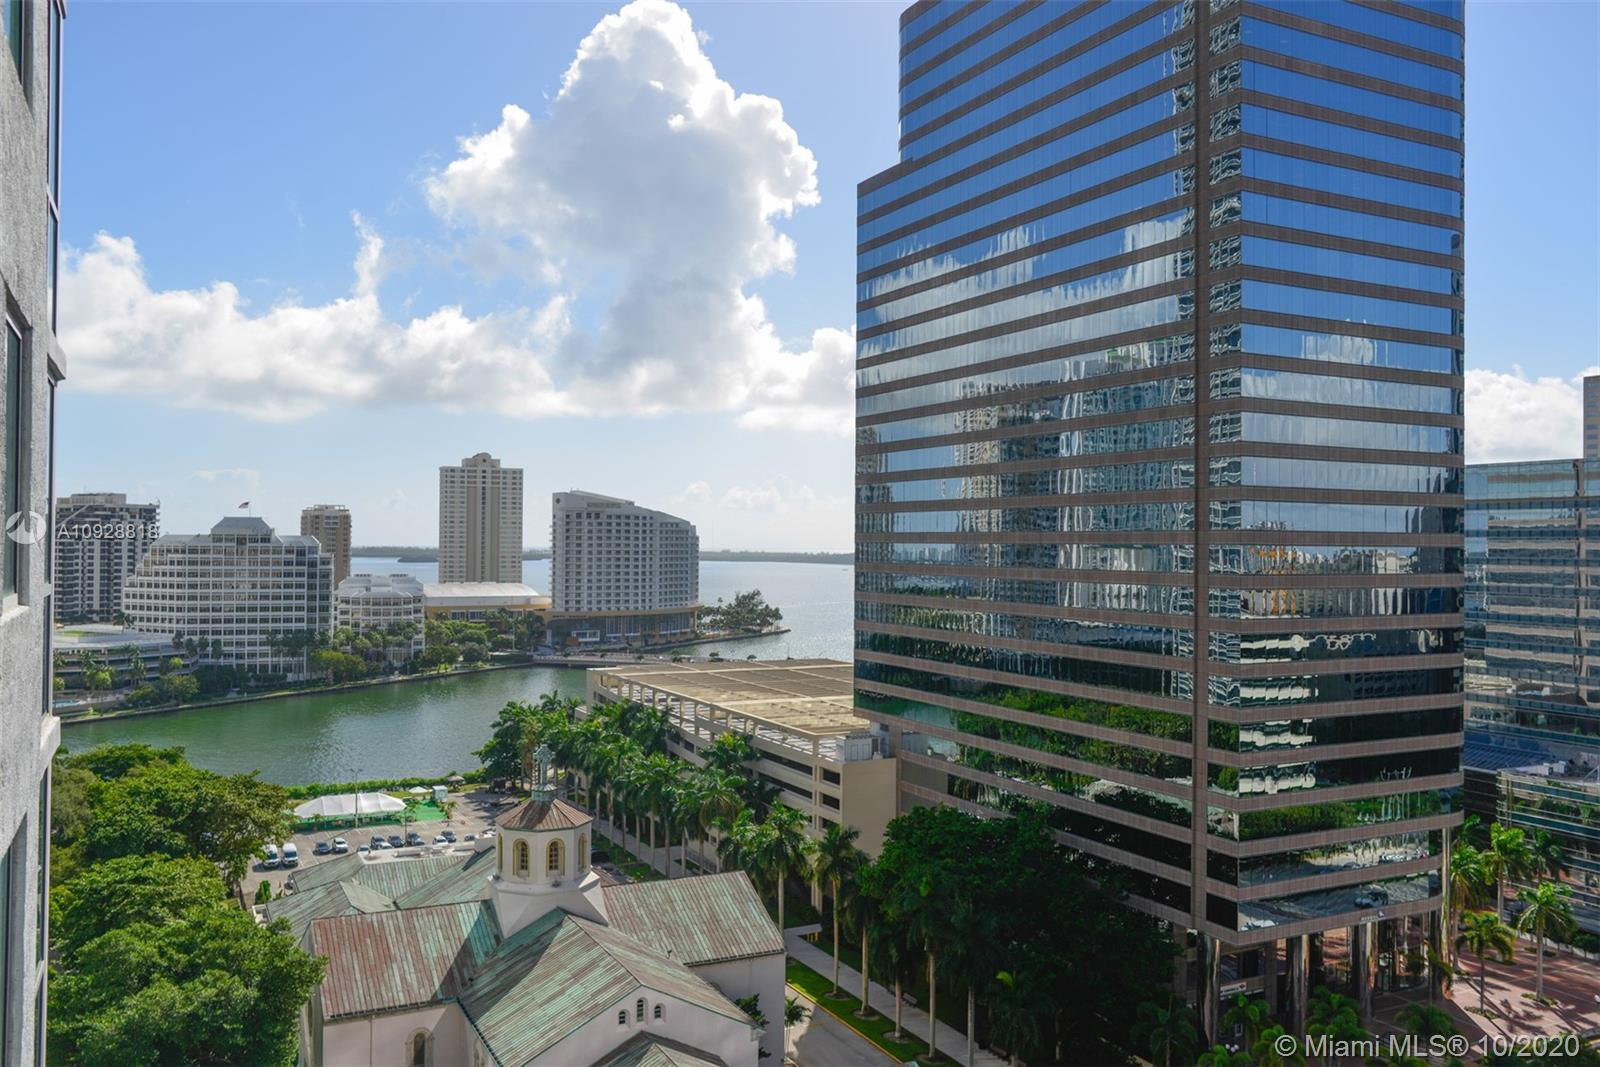 Recently renovated! new porcelain floor tiles, electric blind shades, led lighting, california closets, new a/c unit, and washer and dryer. Perfect location in Brickell Ave, one block away from Brickell Citi Centre Mall, banks, restaurants, and many more. Long balcony overlooking the bay and the city skyline.  The condo association fees cover the internet and cable.